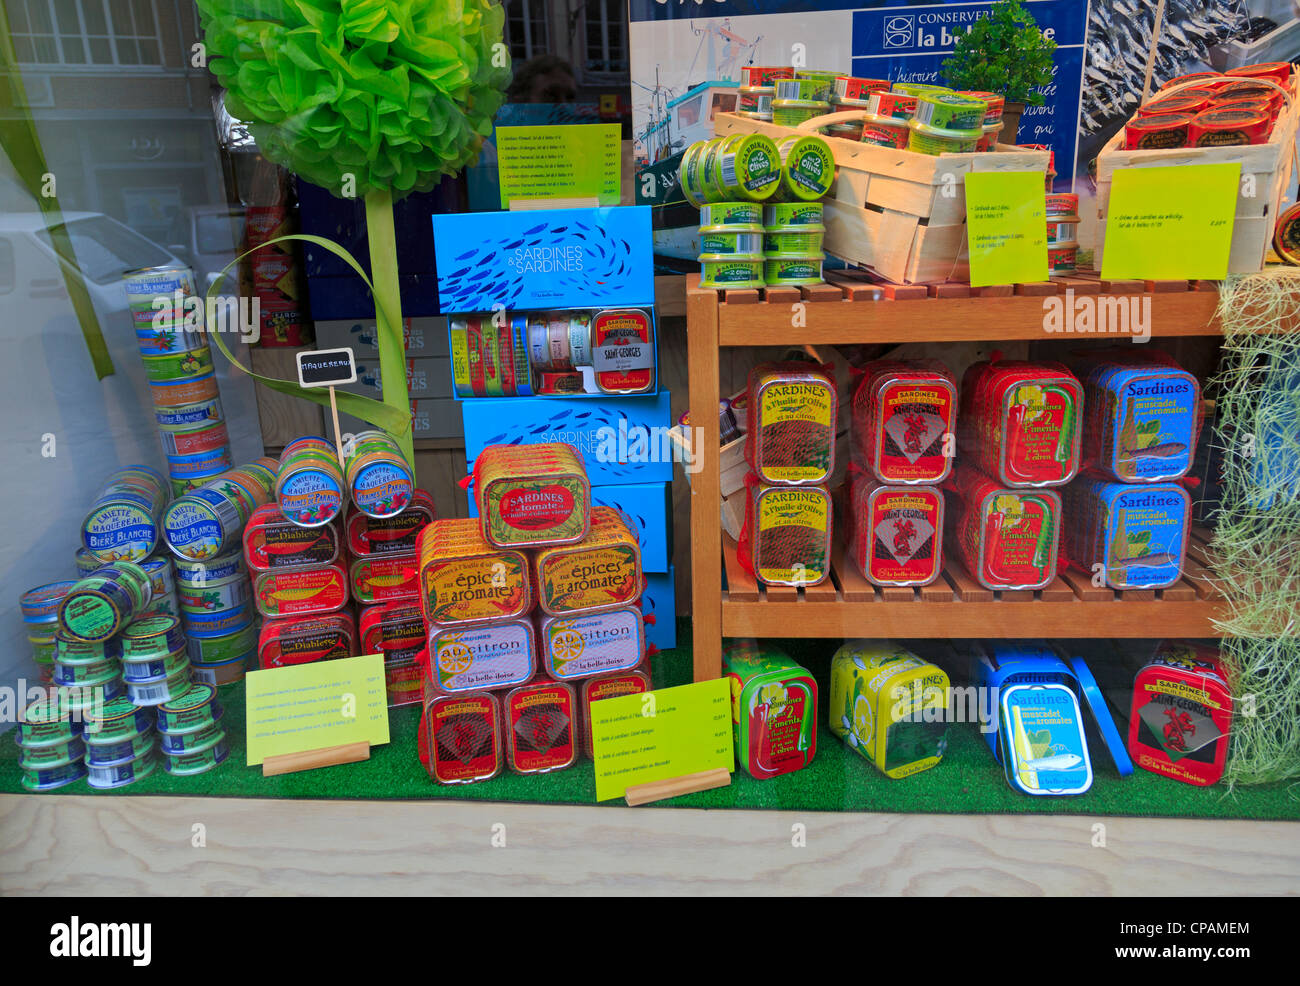 Display of sardines in tins in a shop in Honfleur. Local products are popular with visitors to the historic fishing - Stock Image